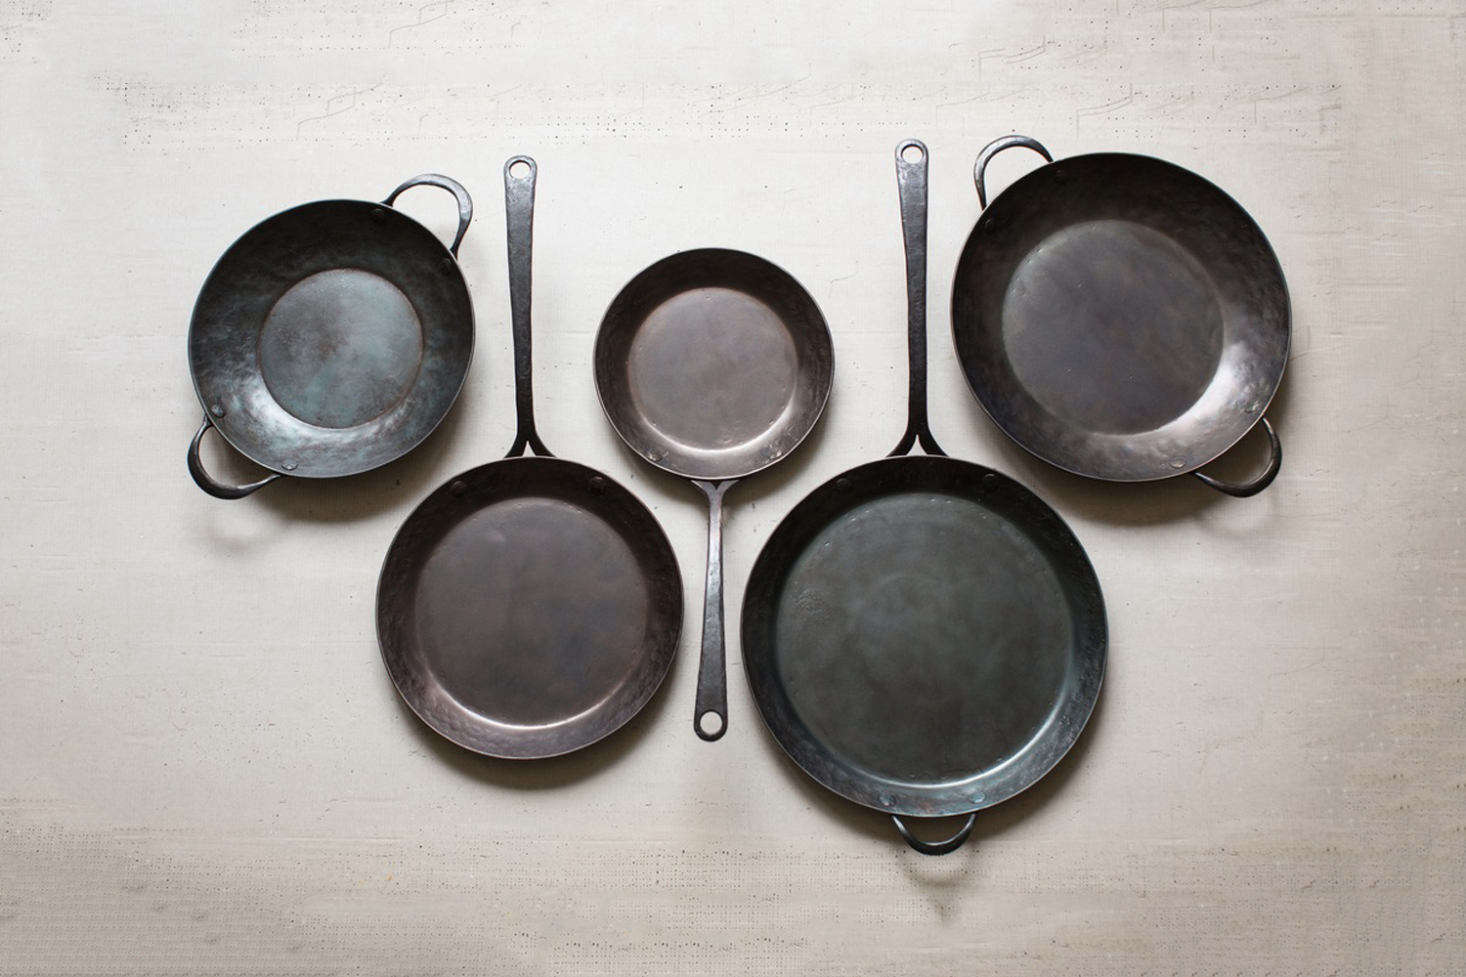 Hand-forged carbon steel cookware from Blanc Creatives in Virginia are made without chemicals, can withstand high temperature, and come pre-seasoned for a naturally non-stick surface. The key to cooking with carbon steel, as the brand reminds us, is to clean with water, dry quickly to avoid rust, and continue use oil repeatedly to maintain seasoning and avoid acidic breakdown from lemons and tomatoes. Available in different sizes of Roaster (starting at $0), Skillet (starting at $